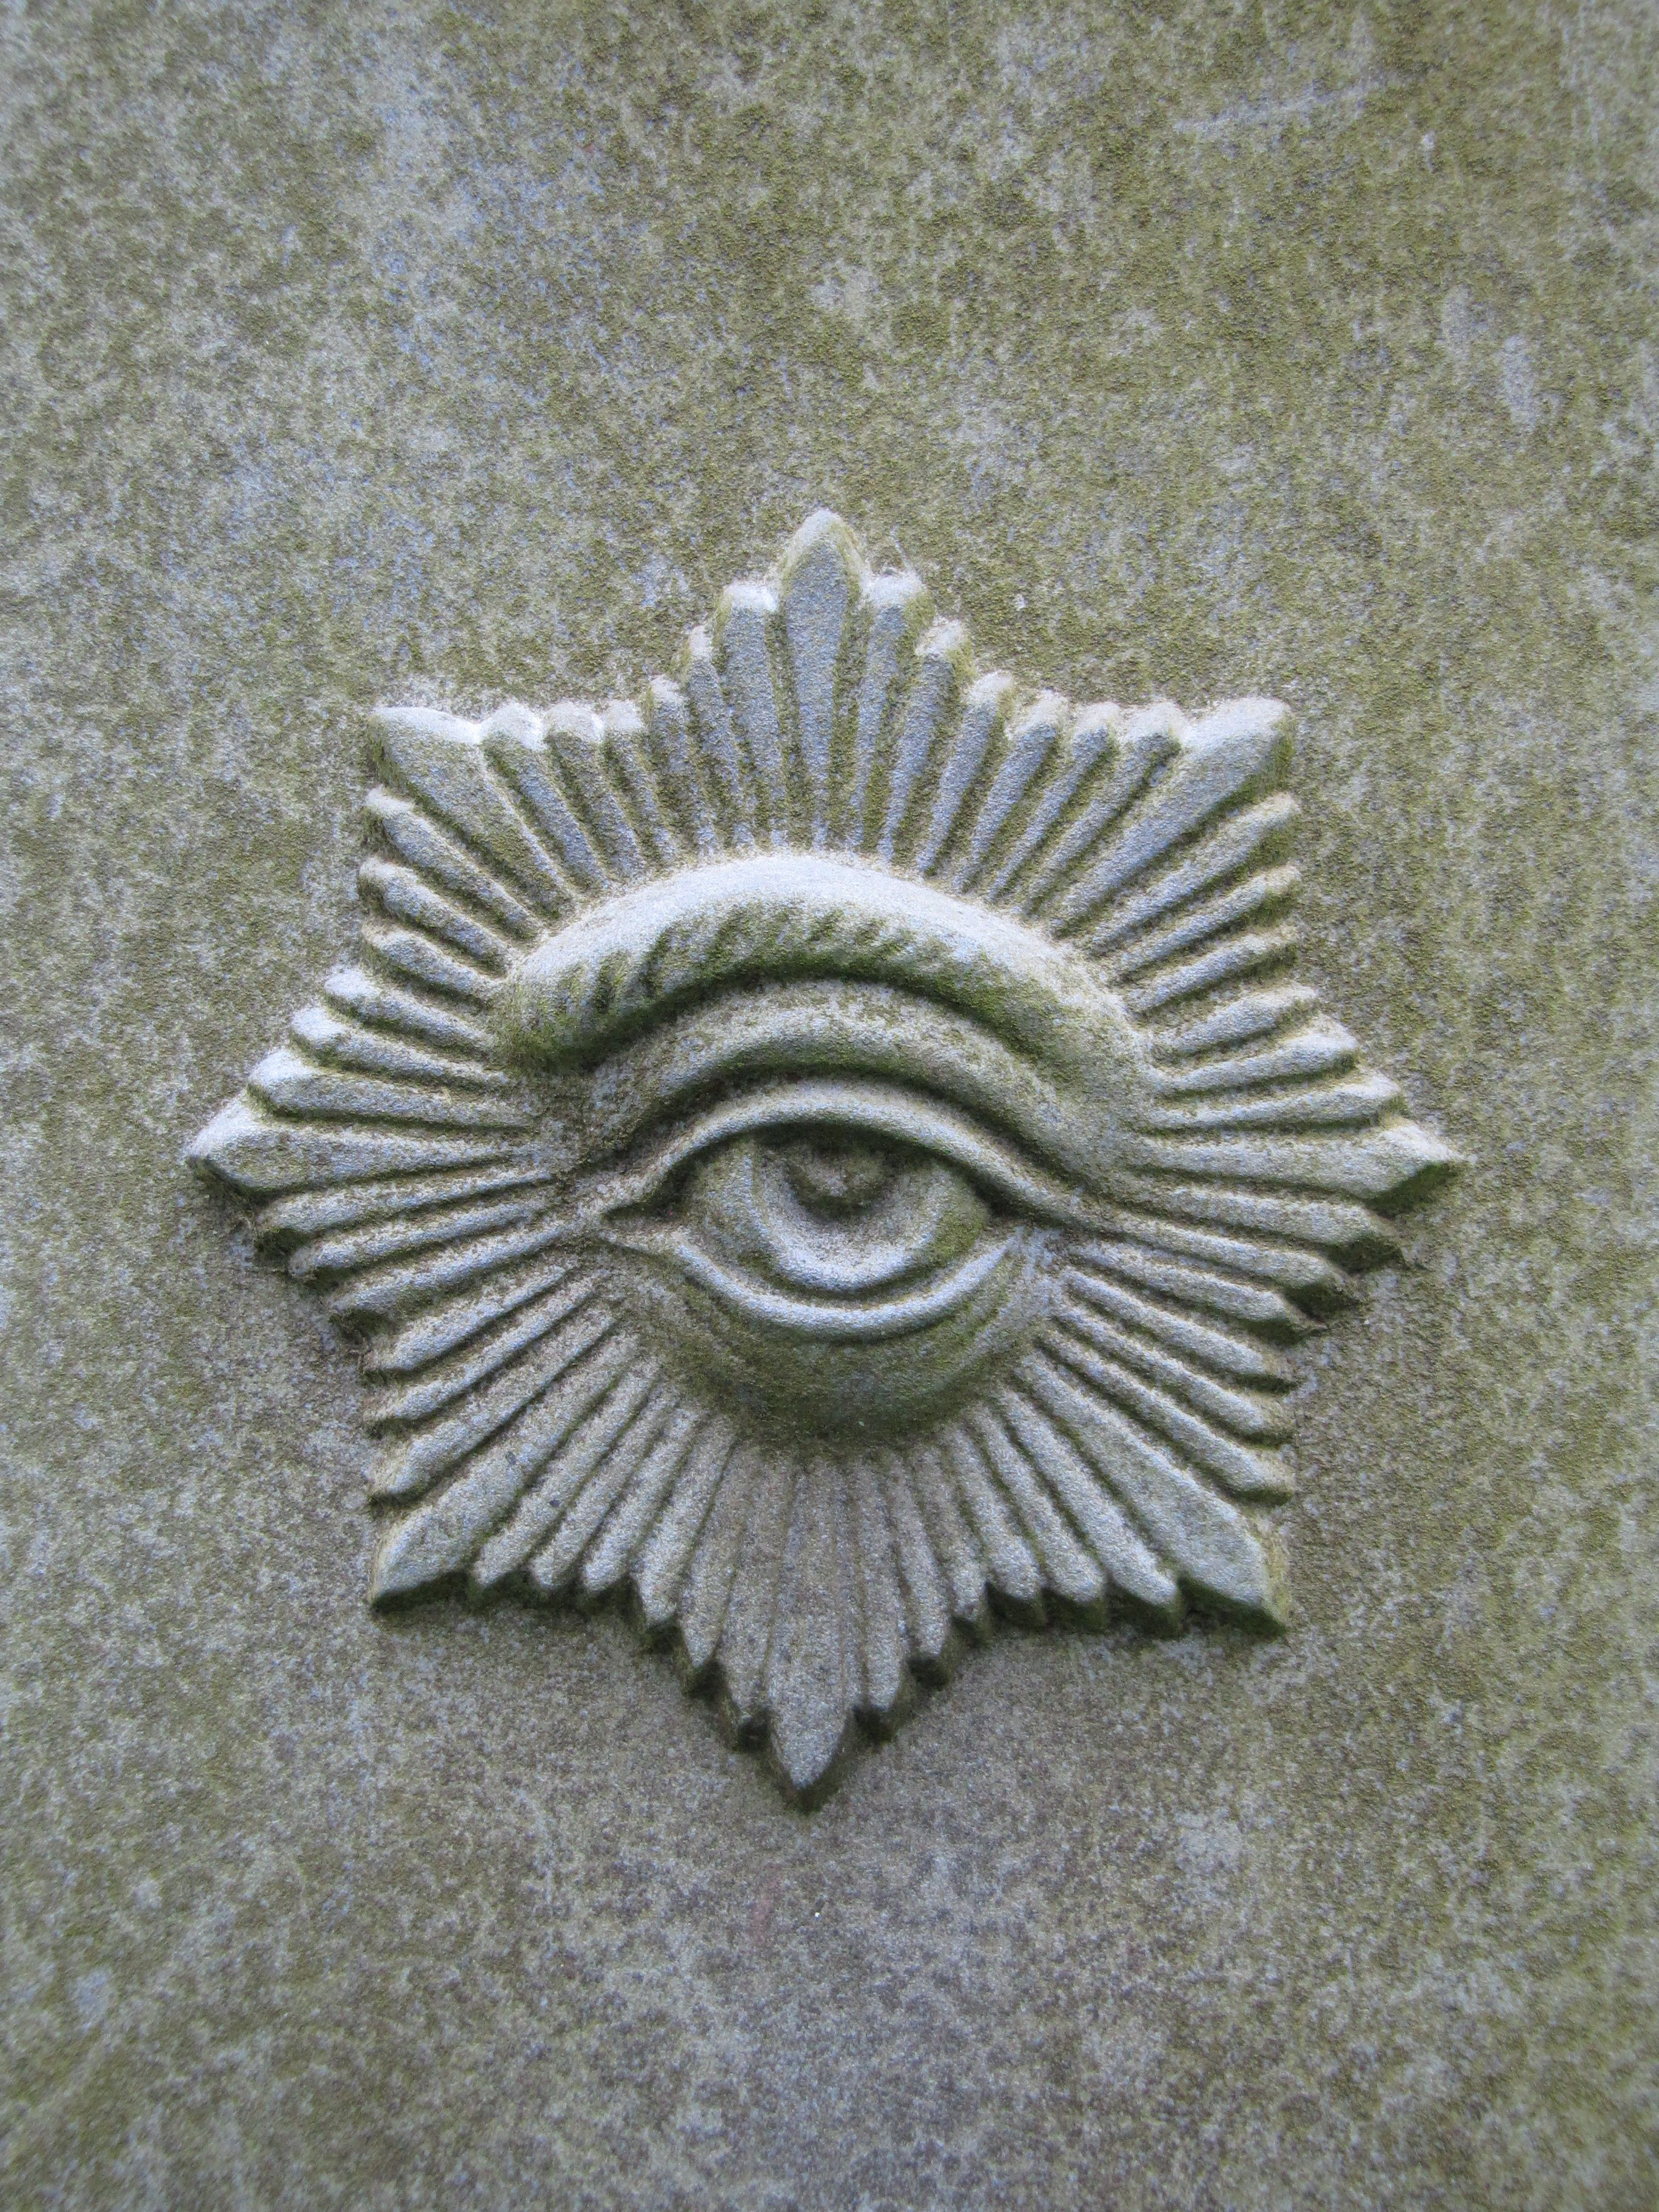 The all seeing eye of god also called the eye of providence is the all seeing eye of god also called the eye of providence is one biocorpaavc